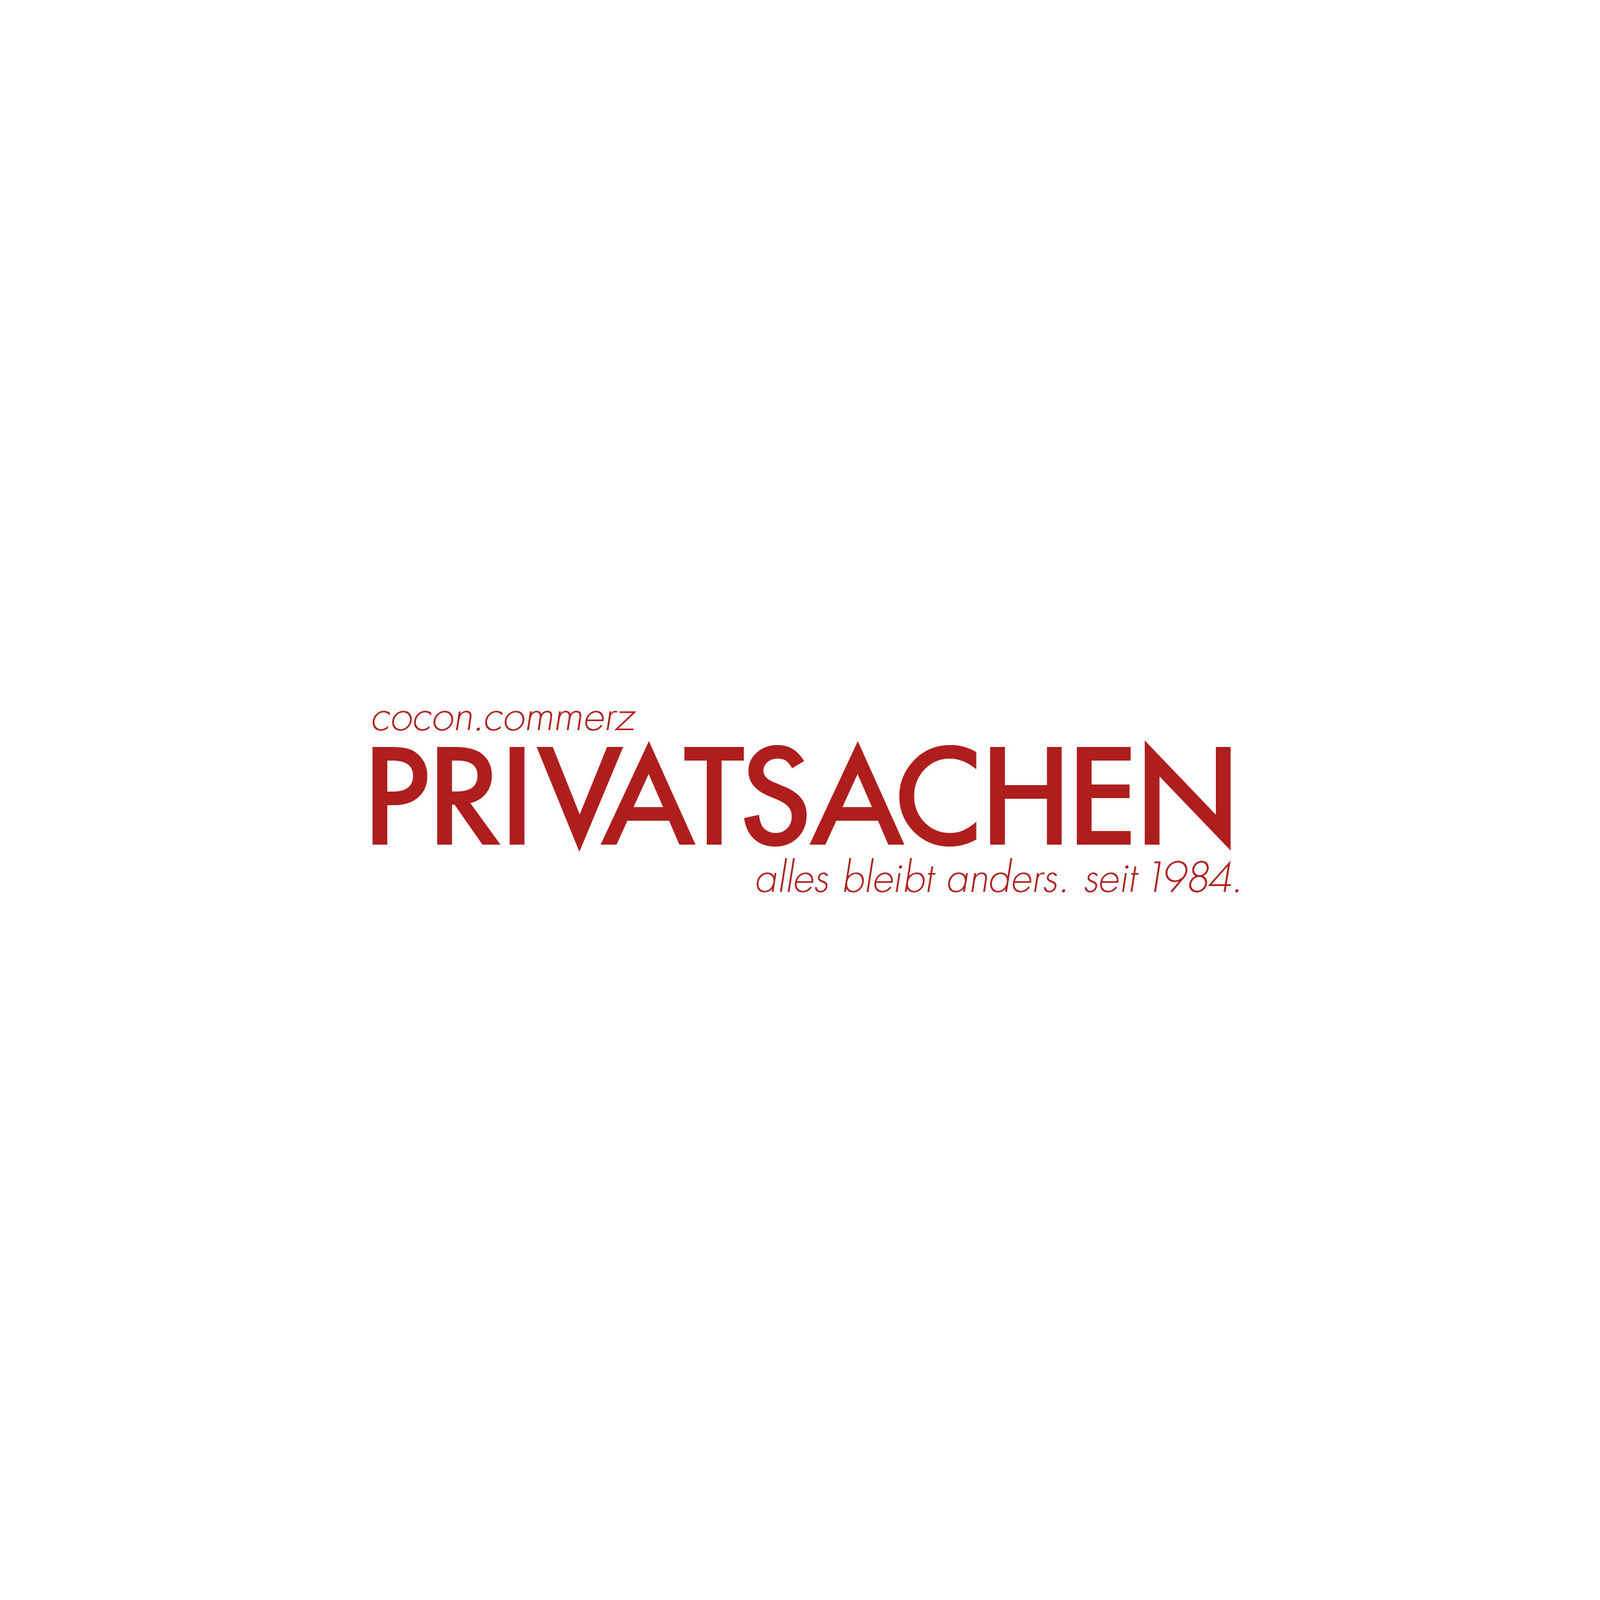 cocon.commerz PRIVATSACHEN